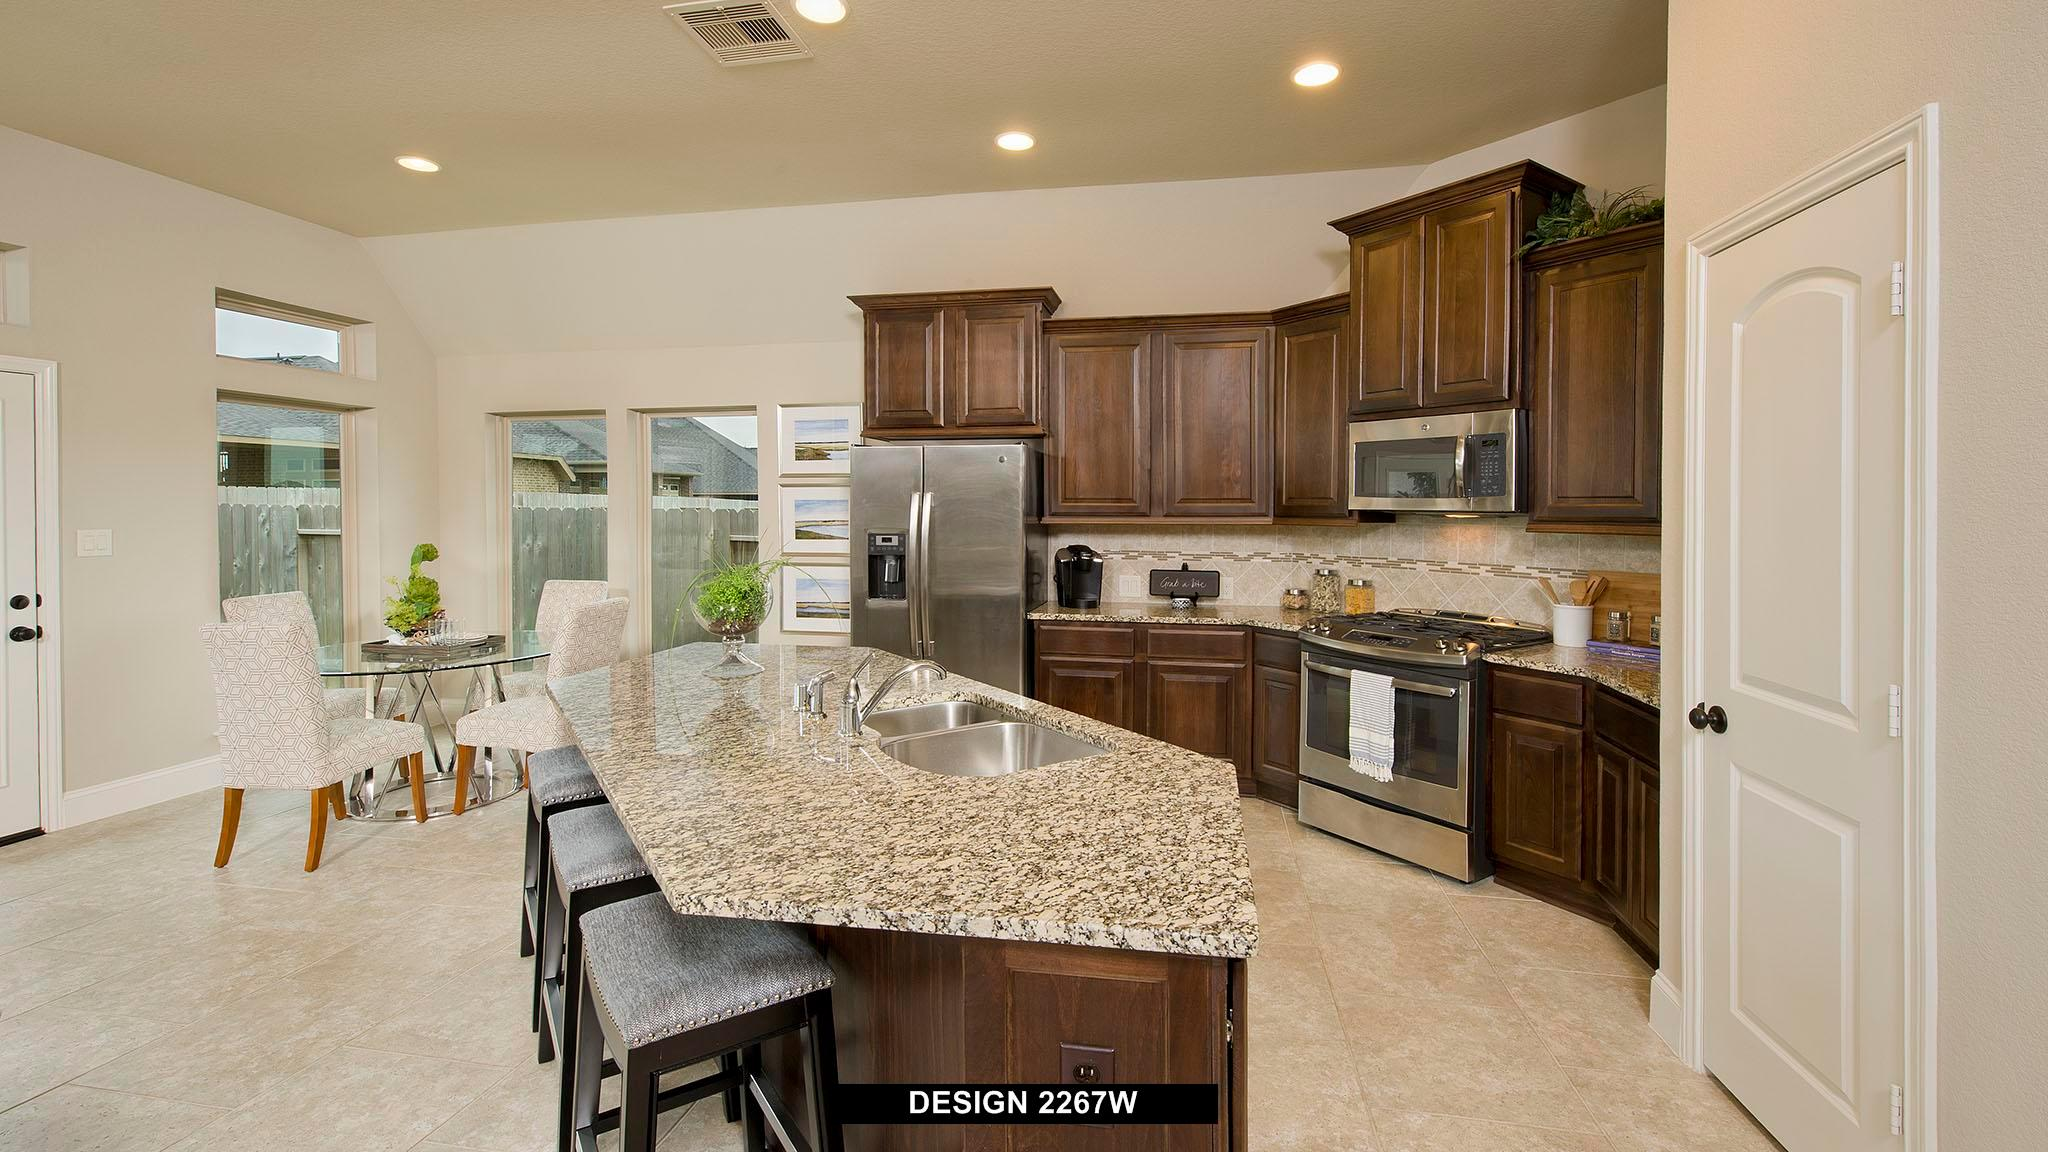 Kitchen featured in the 2267W By Perry Homes in Dallas, TX